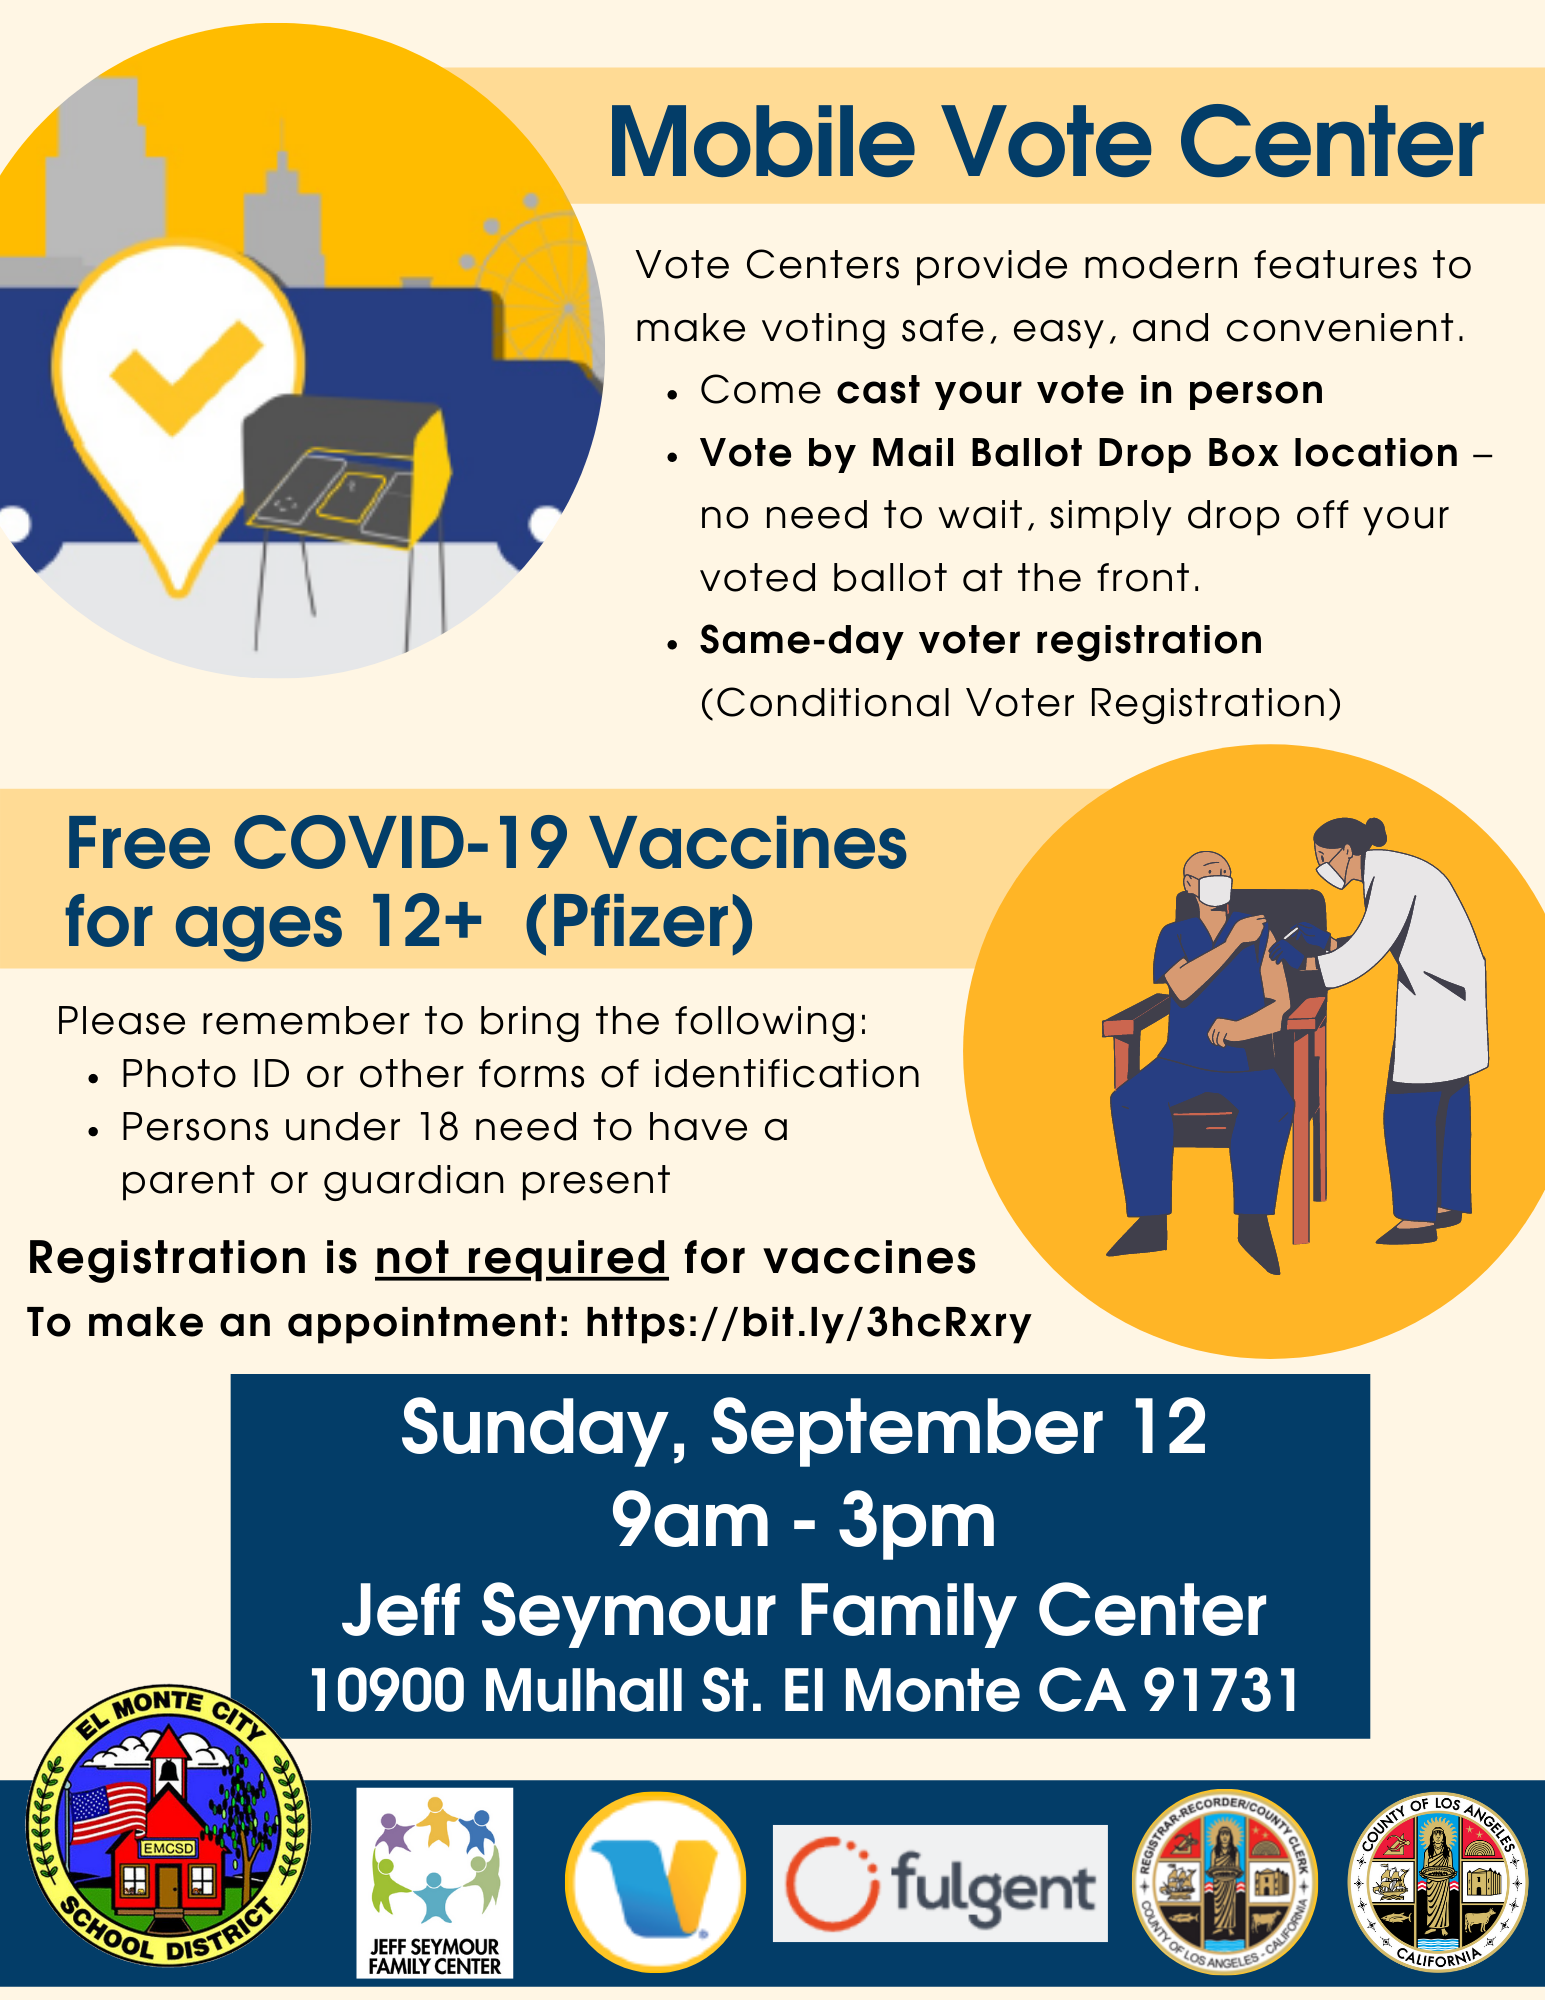 Mobile Voting Center and Pop-Up Vaccine Clinic at Jeff Seymour Family Center on Sunday, September 12 from 9am - 3pm. English flyer